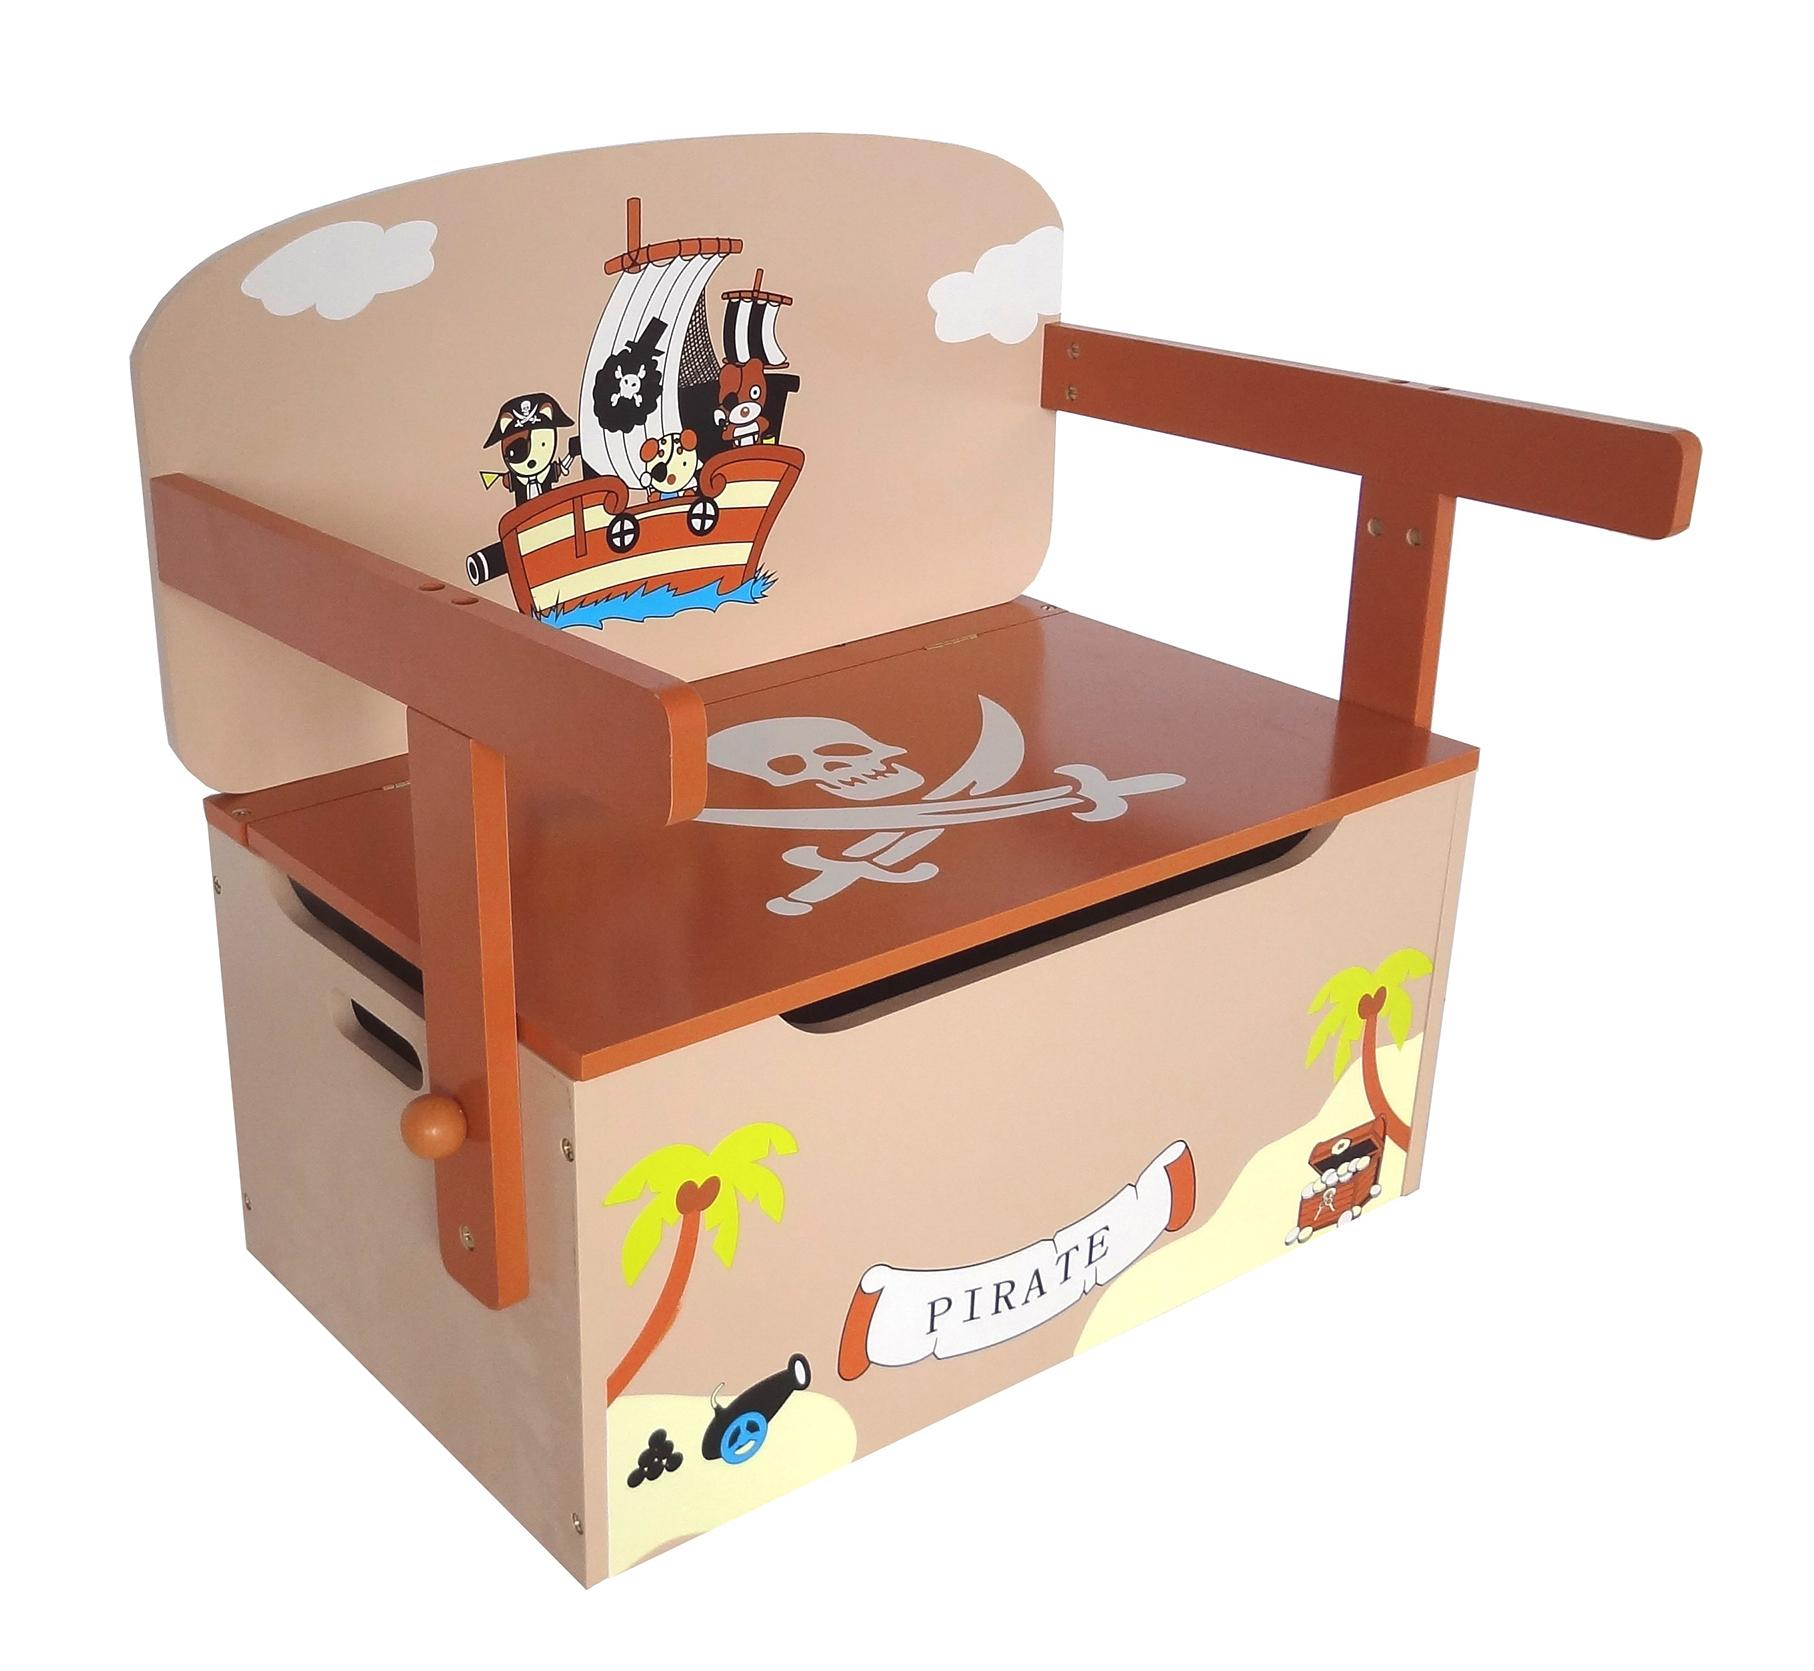 Toy Box Large Solid Wood Storage Chest Trunk Playroom: Kiddi Style Children's Pirate Wooden Convertible Toy Box